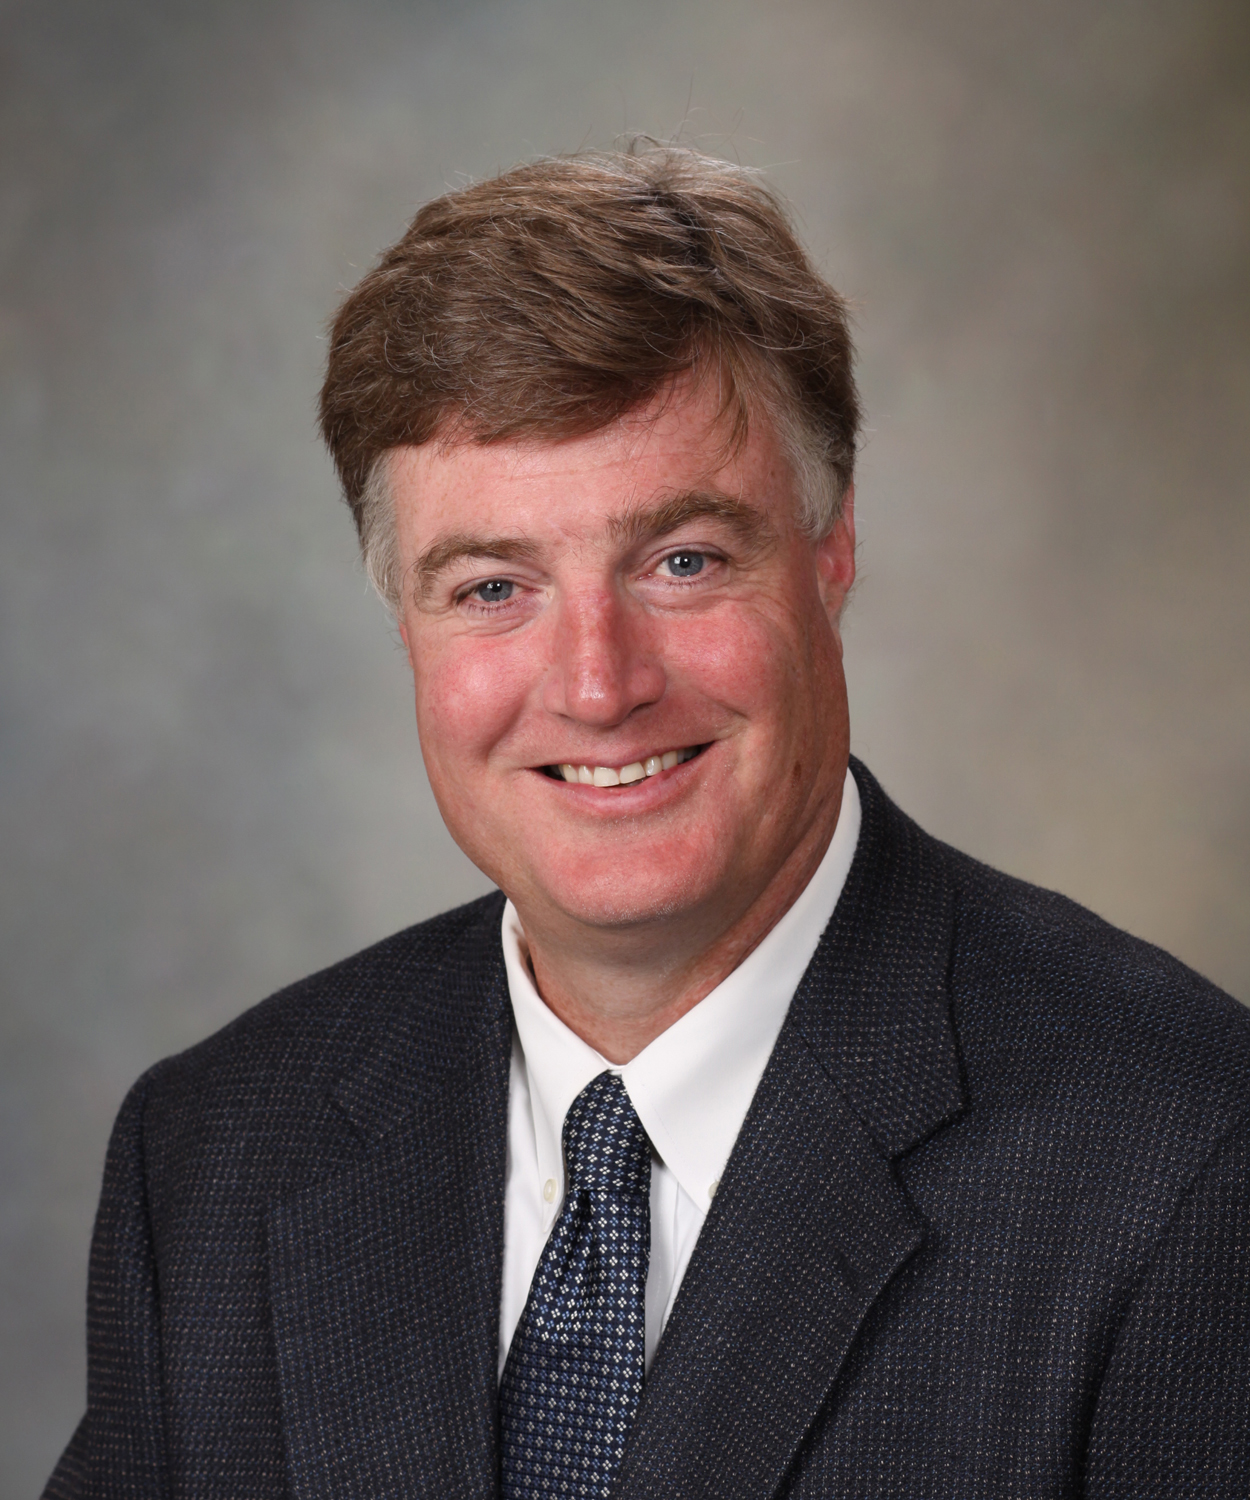 Dr. Andrew Badley, MD, FRCP(C), FACP, FIDSA  Professor and Chair, Dept of Molecular Medicine, Professor of Infectious Diseases, Chair - COVID-19 Research Task Force, Mayo Clinic, Rochester, MN